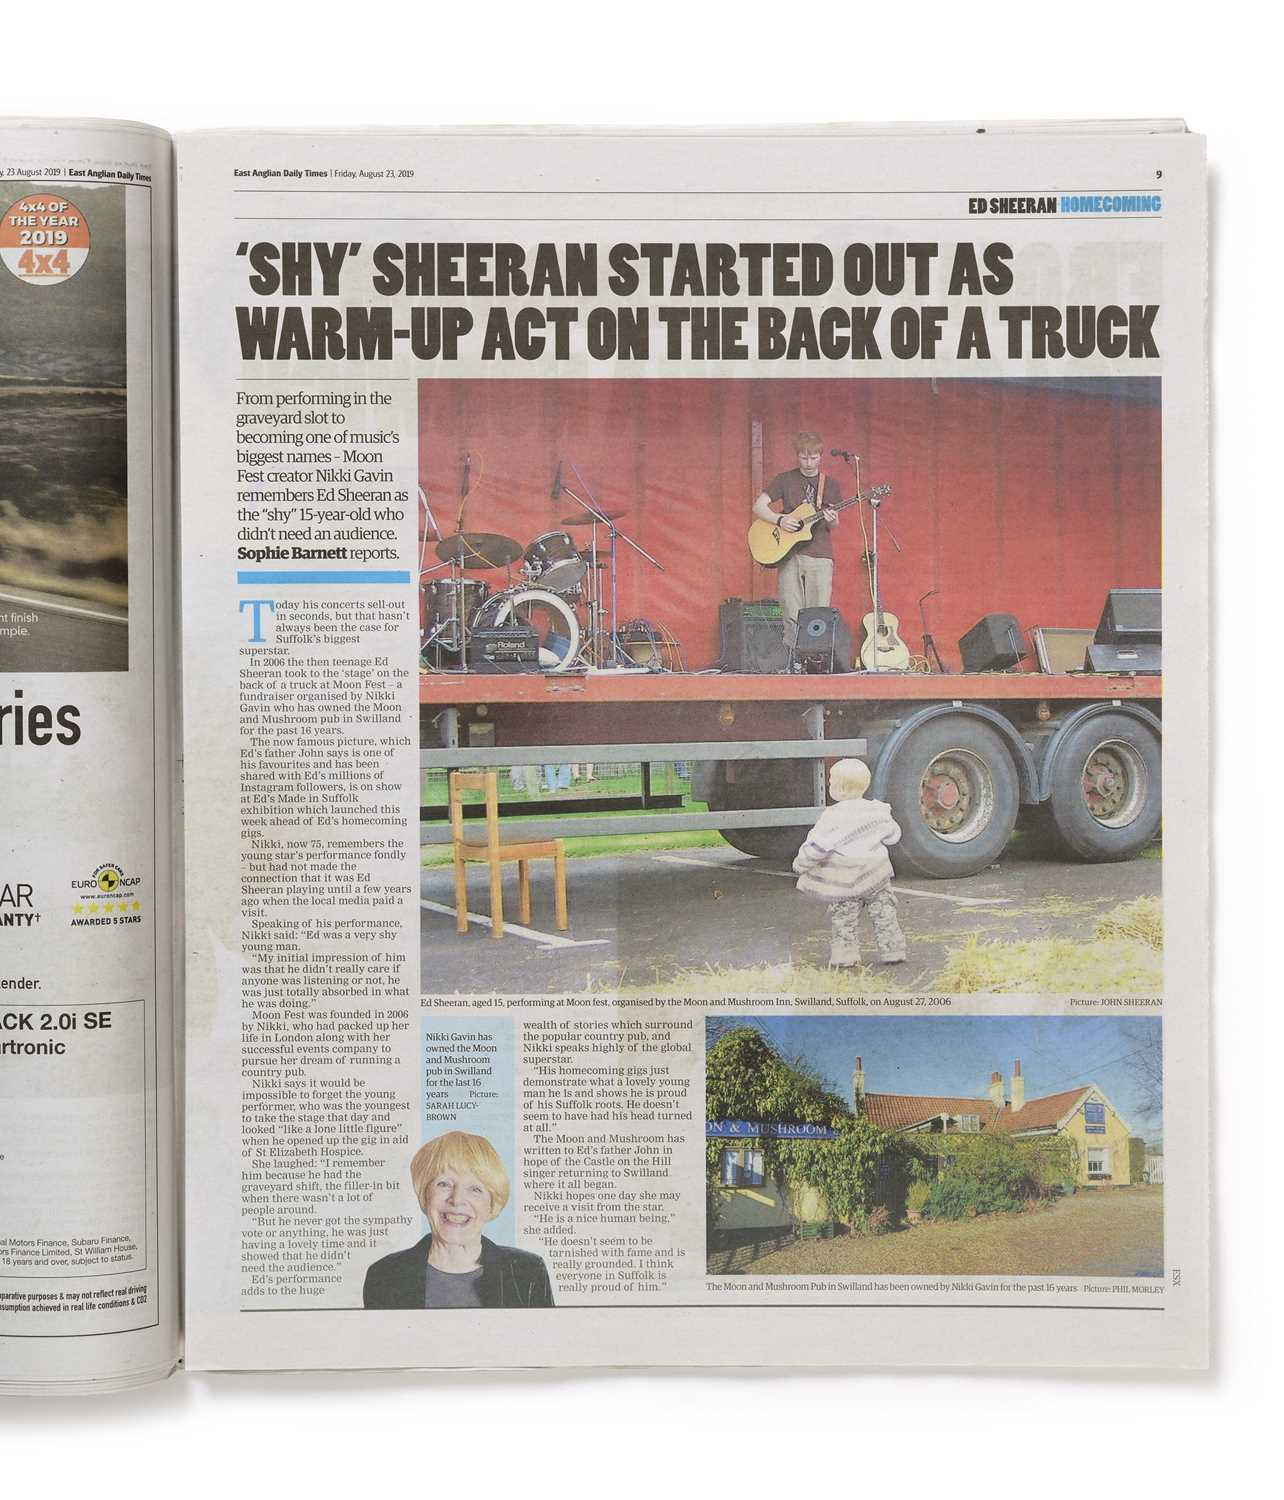 Signed Ed Sheeran Daily Times Newspaper, Friday 23 August 2019 An original copy of The East - Image 2 of 3